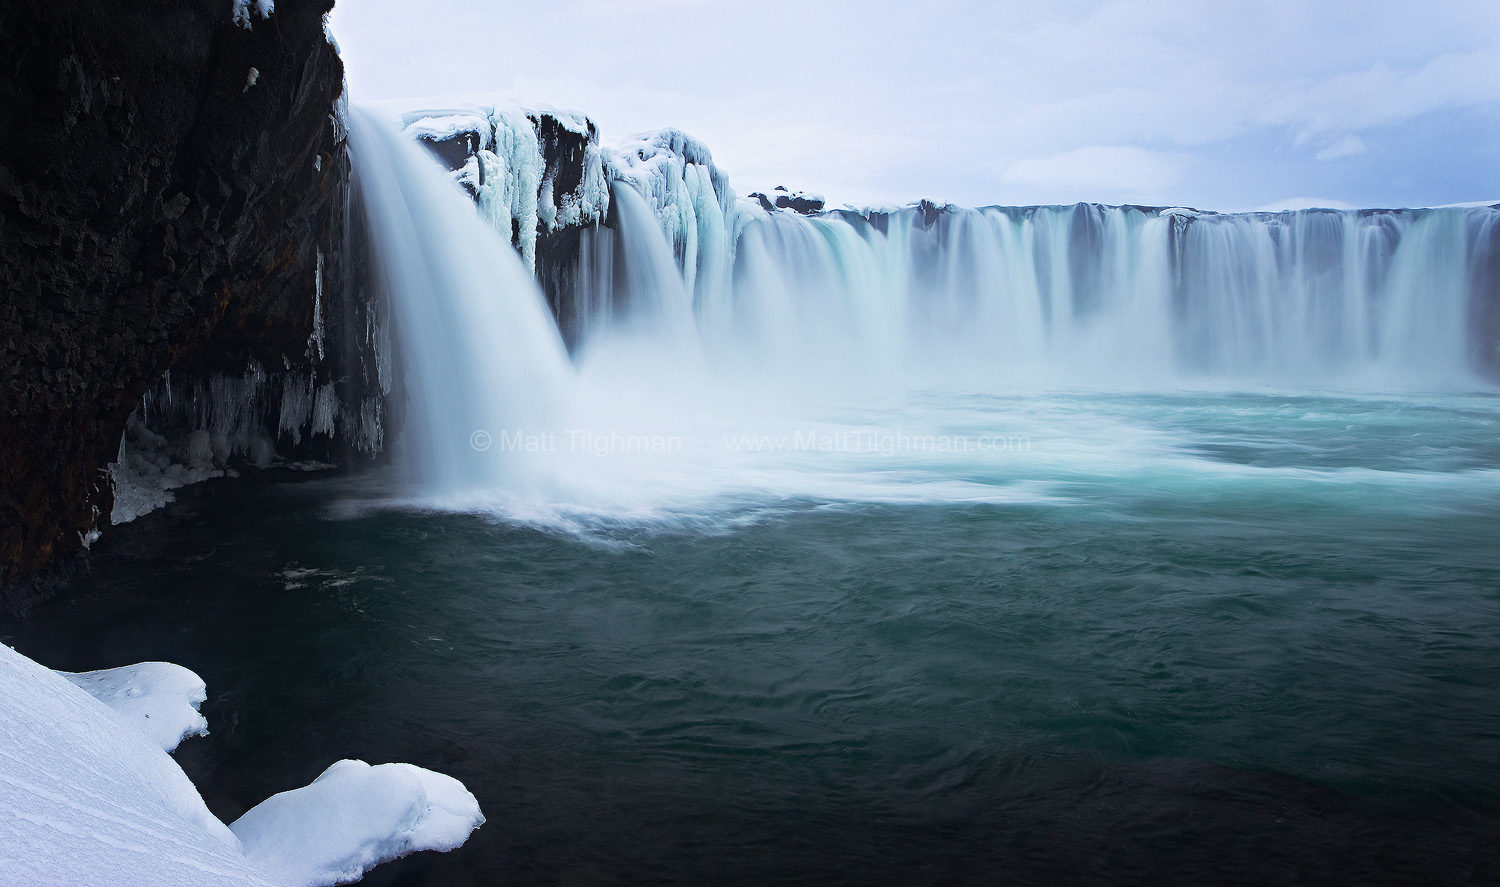 Fine art stock photograph of Godafoss, Iceland. Winter brings a beautiful fantasy-like landscape to this iconic waterfall. It also helps keep away the tourists.